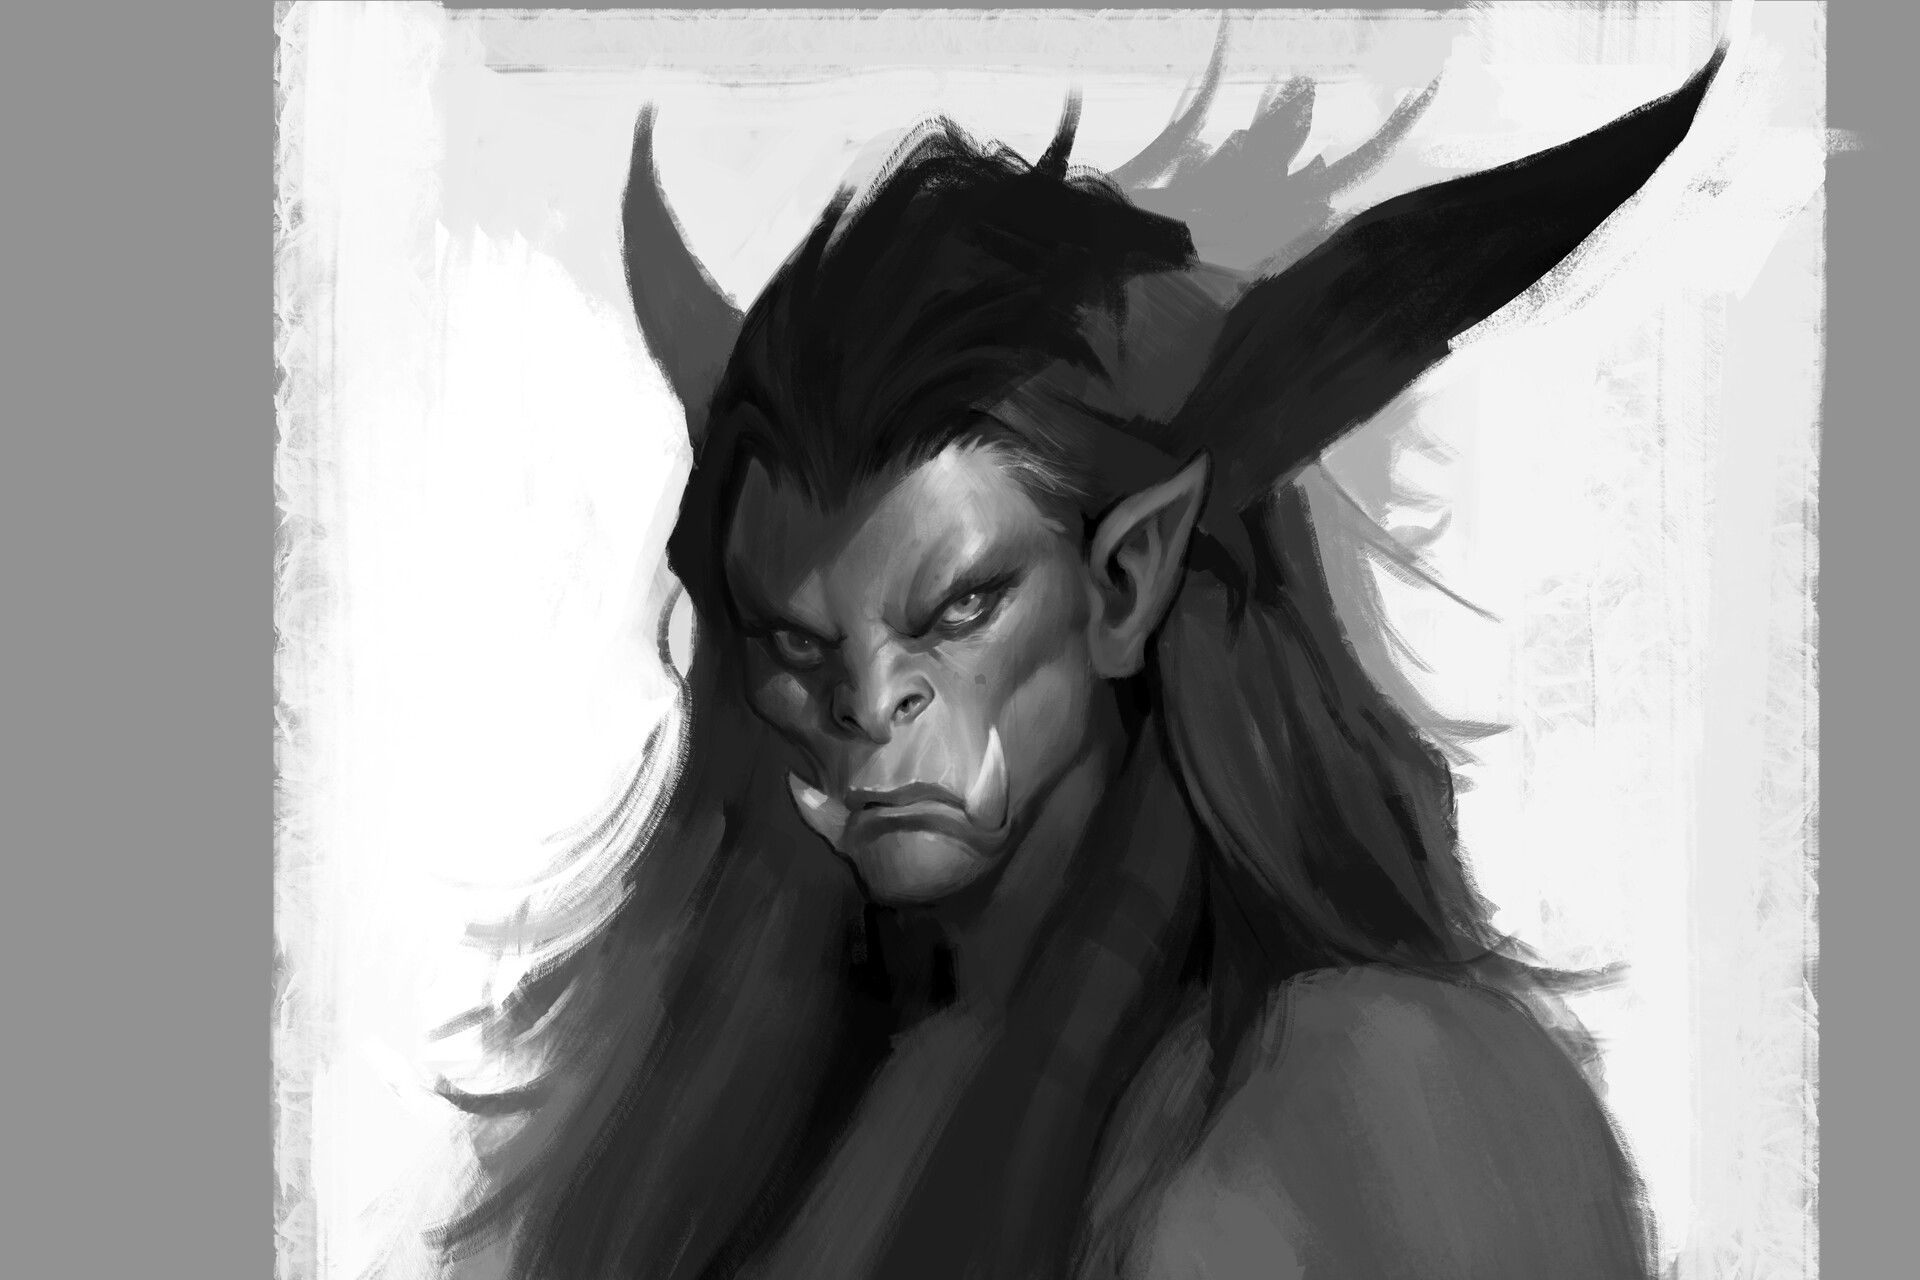 WoW inspired character portrait